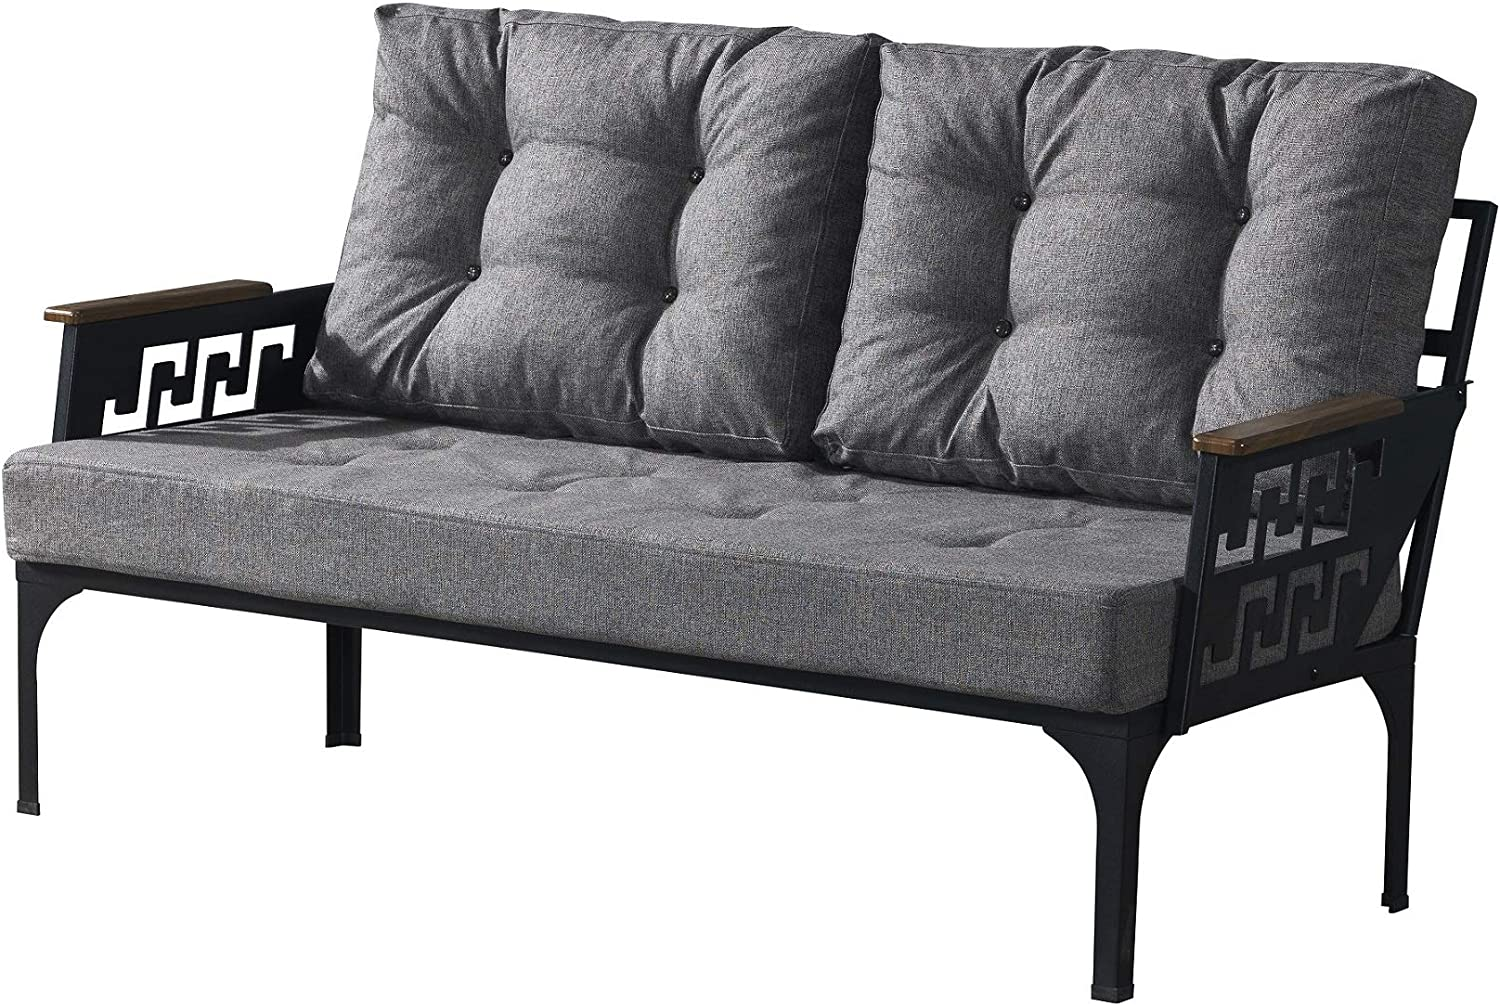 Line Patio Love Seat Outdoor Indoor Use Garden Balcony Poolside Lawn Backyard Metal Furniture Sectional Corner Sofa Modern Bistro Bench Seat (Anthracite) : Garden & Outdoor